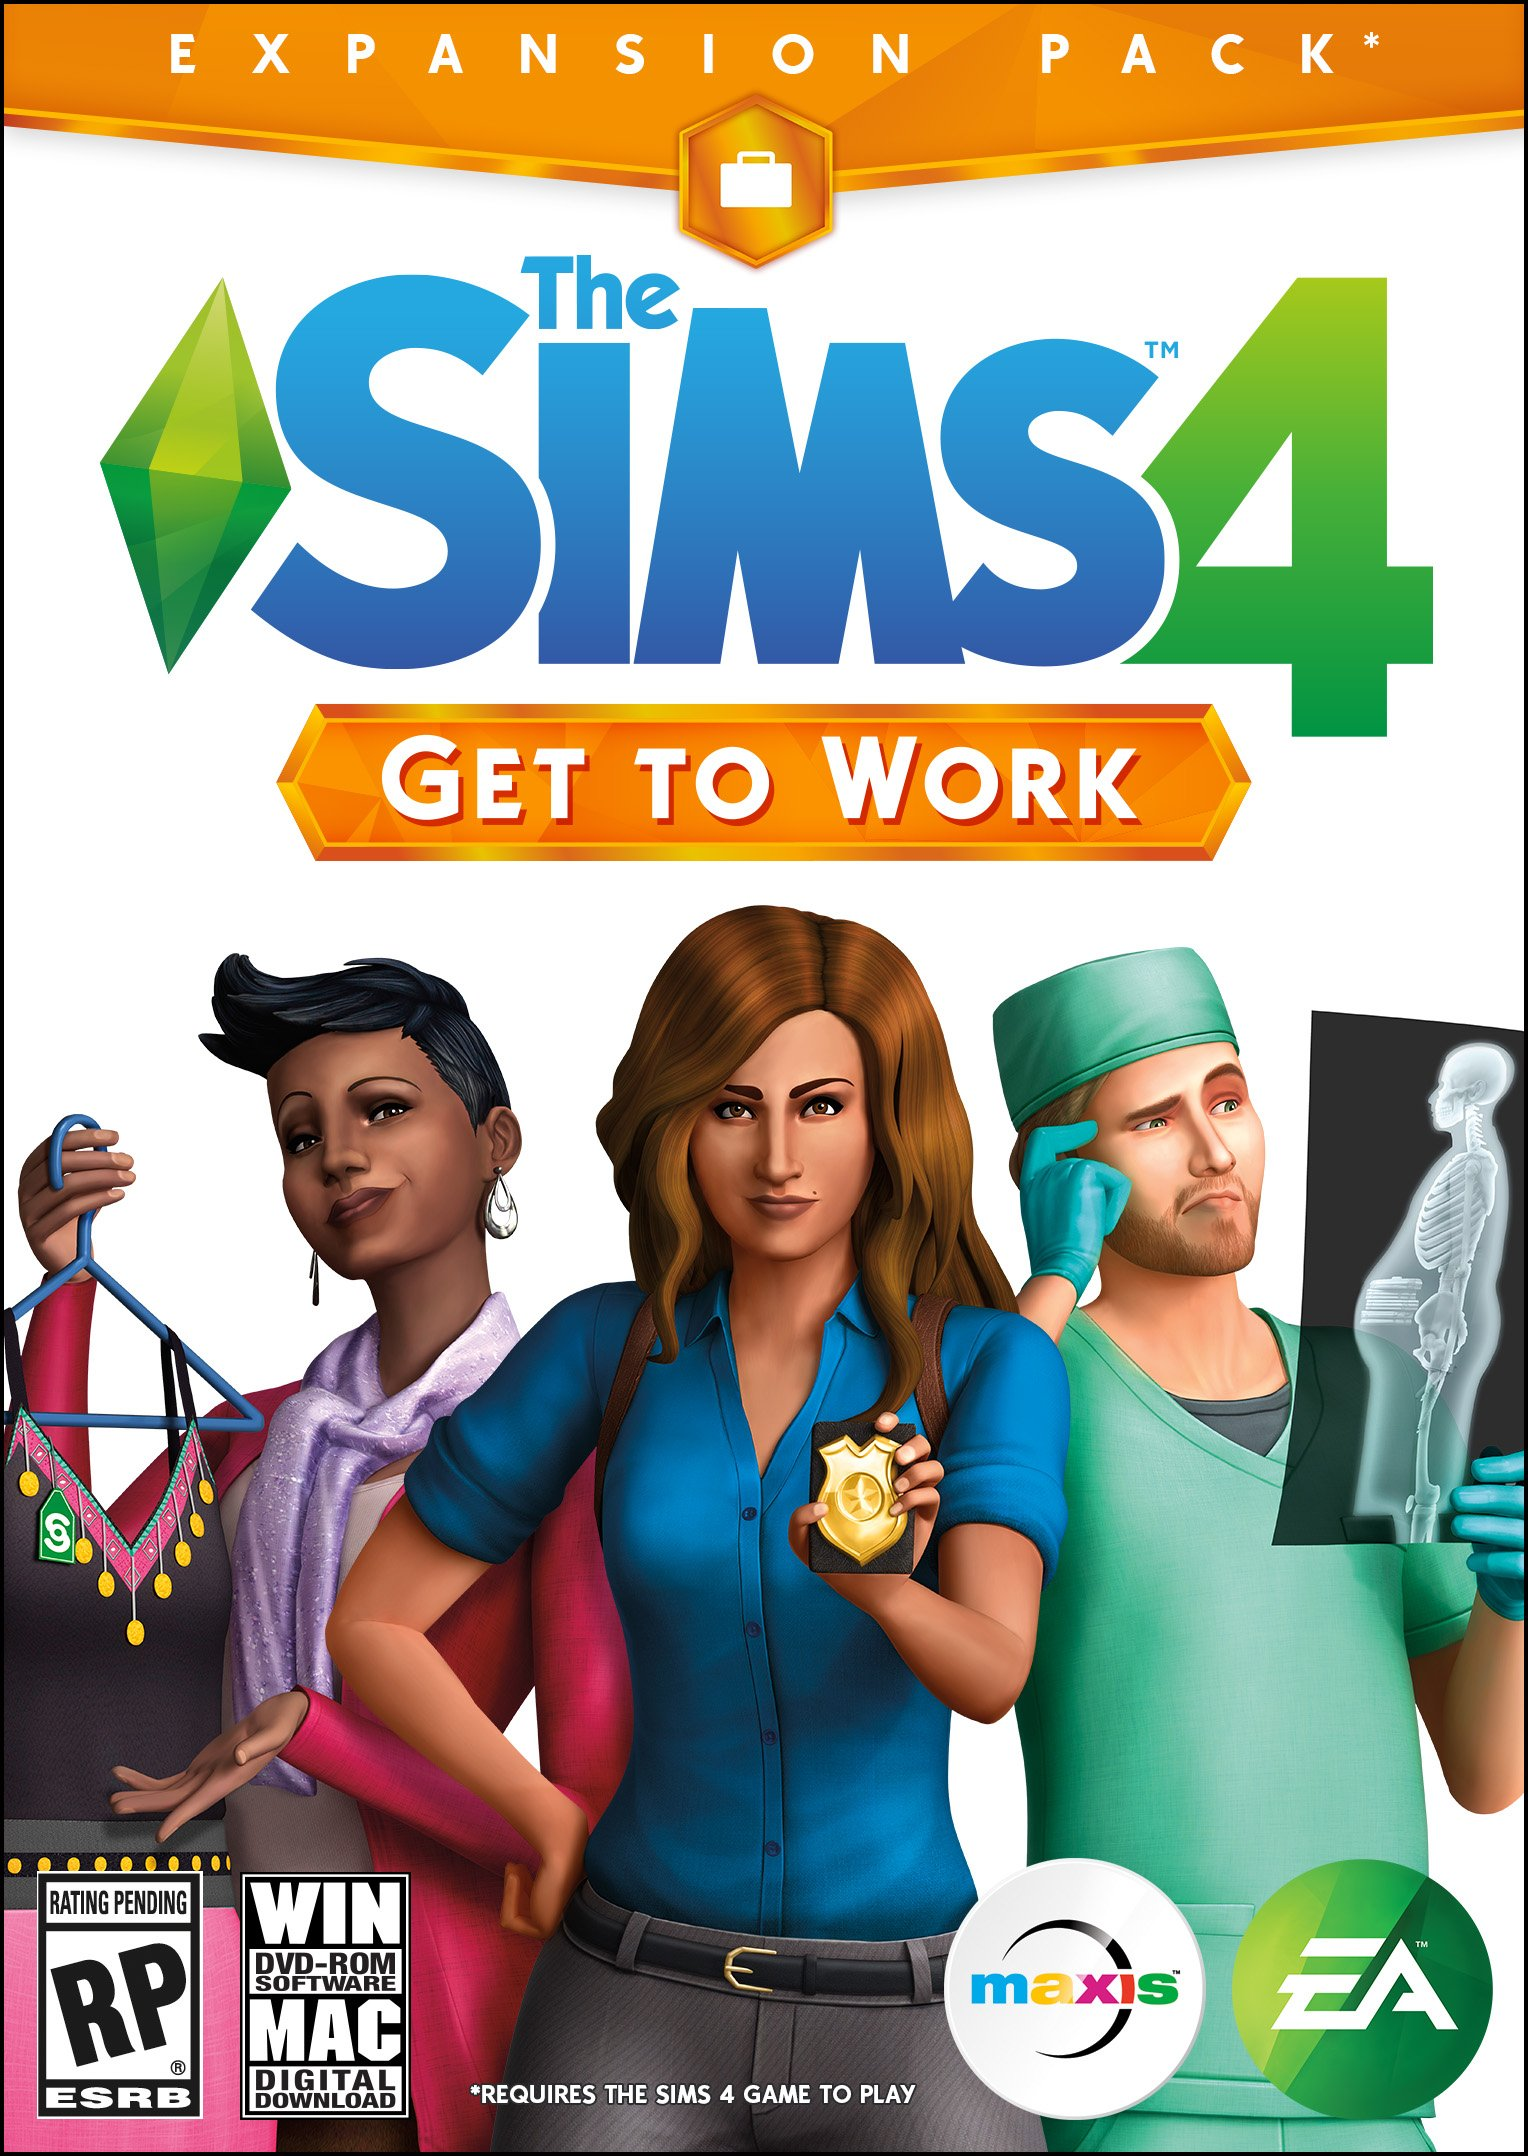 Box art - The Sims 4: Get to Work